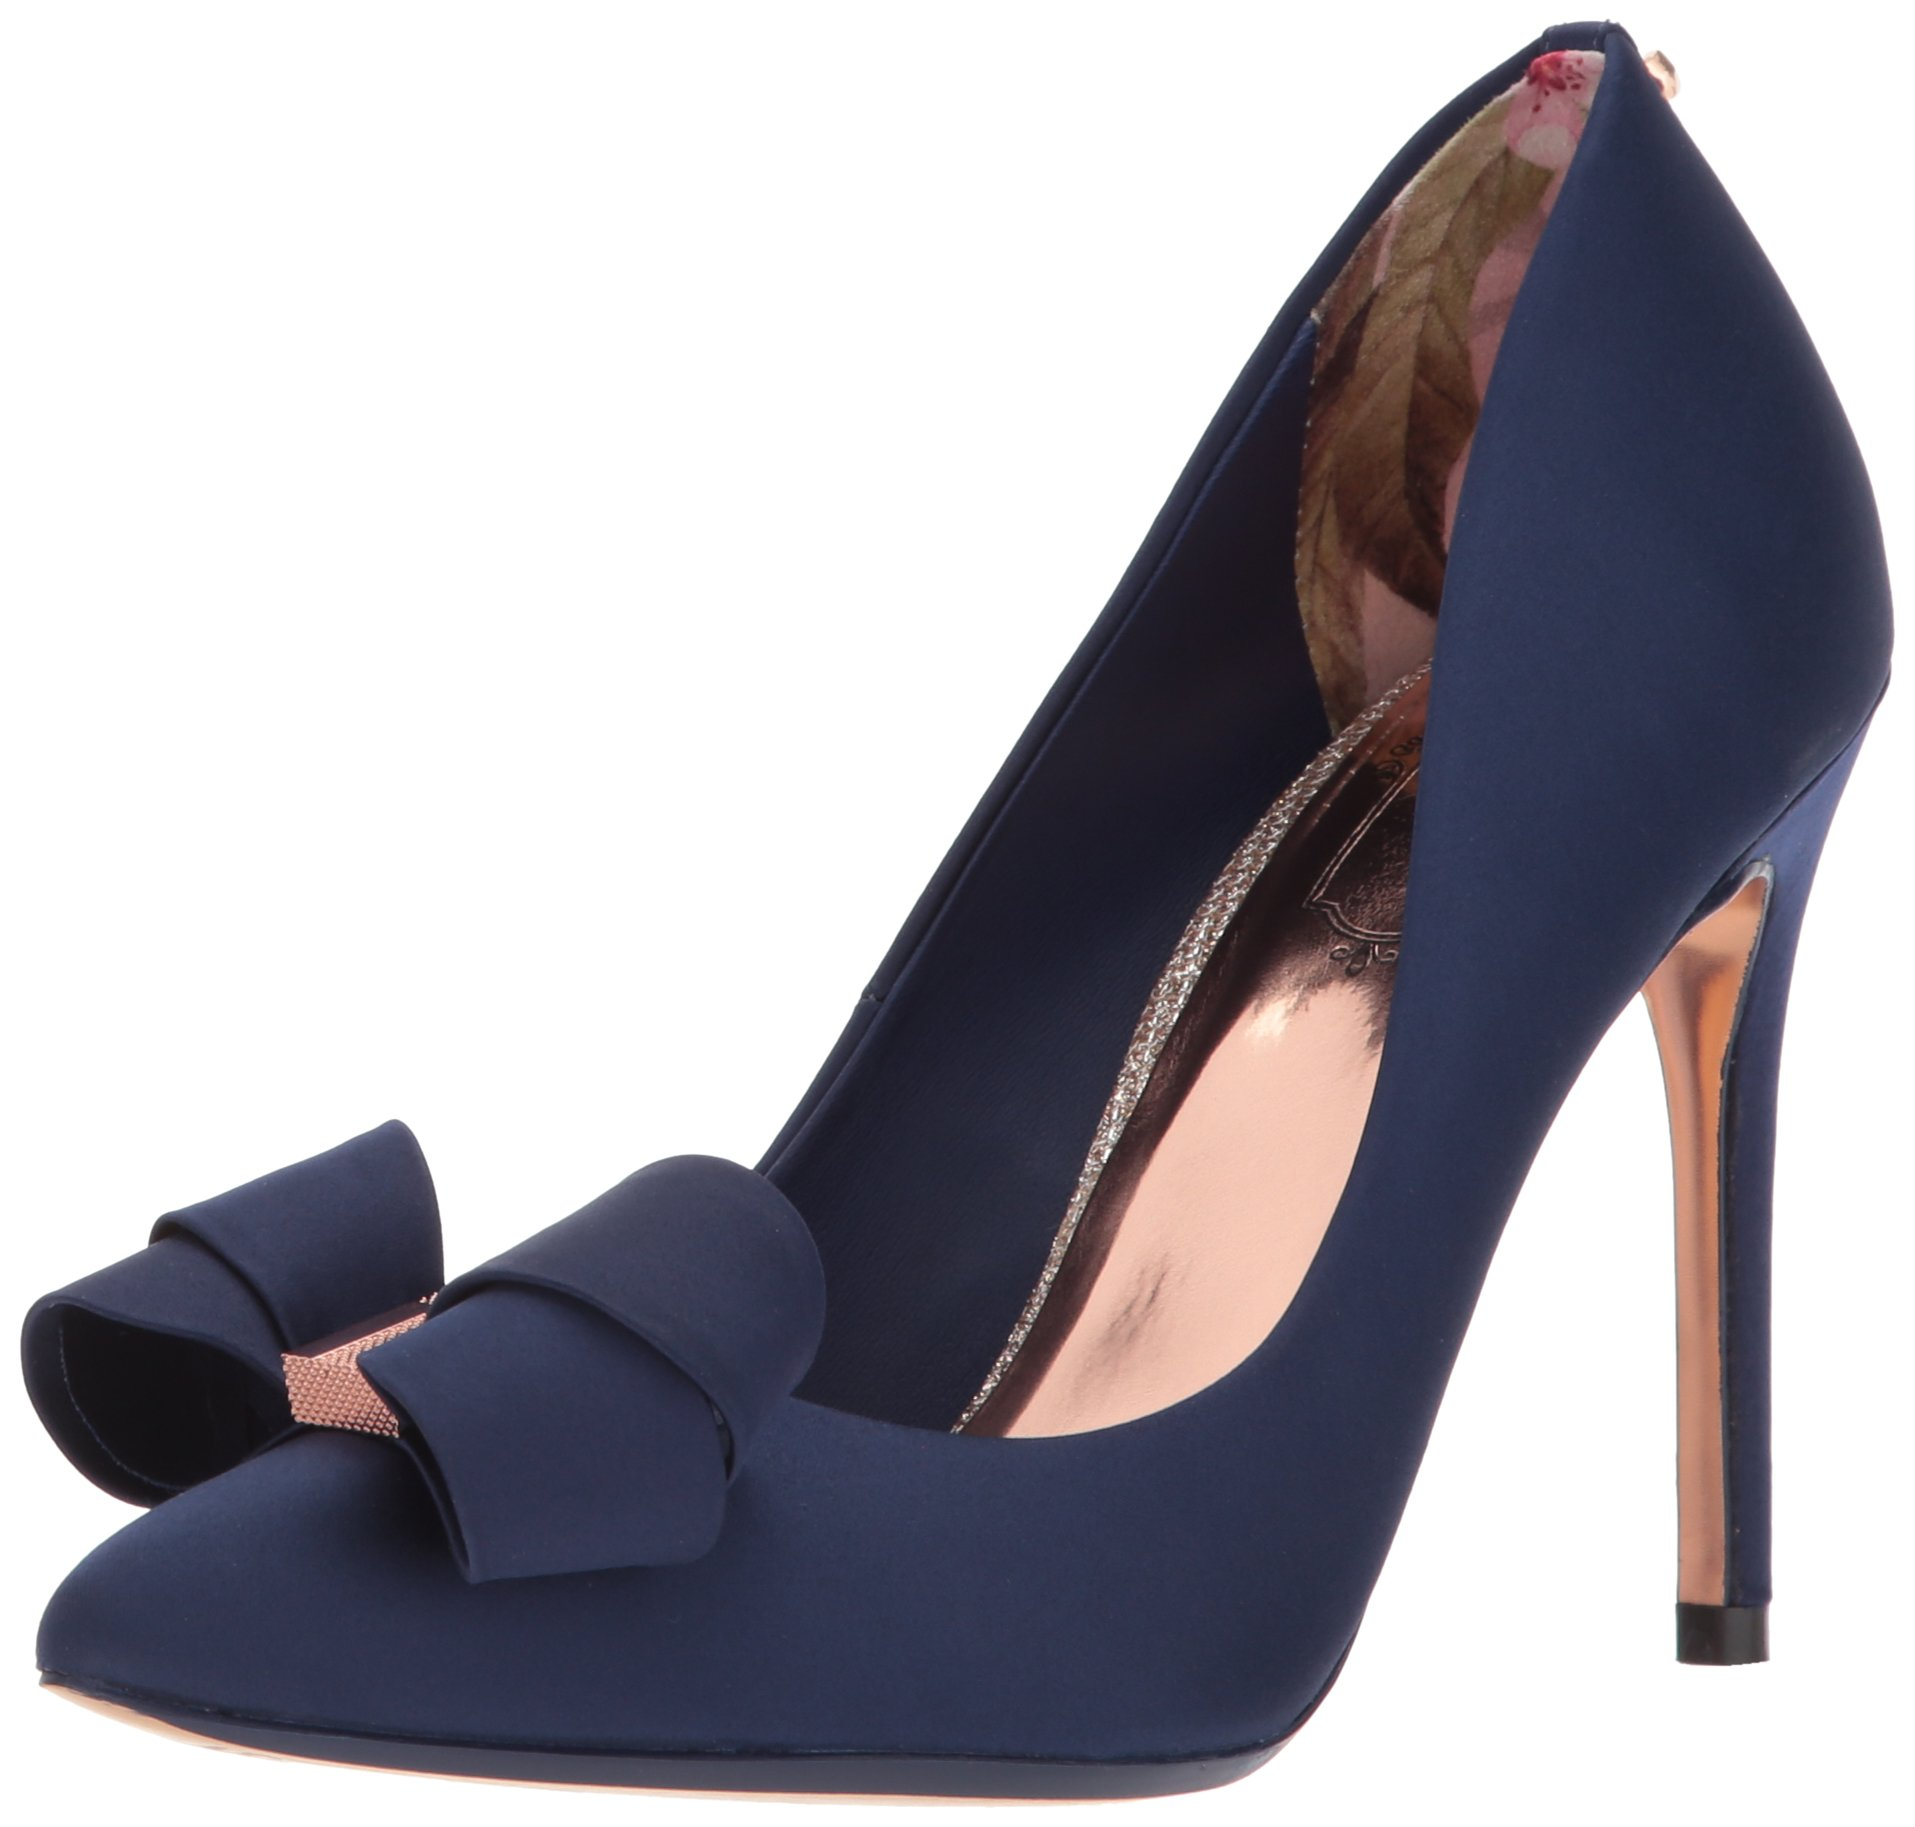 Ted Baker Women's Skalett Pump, Navy, 6.5 B(M) US